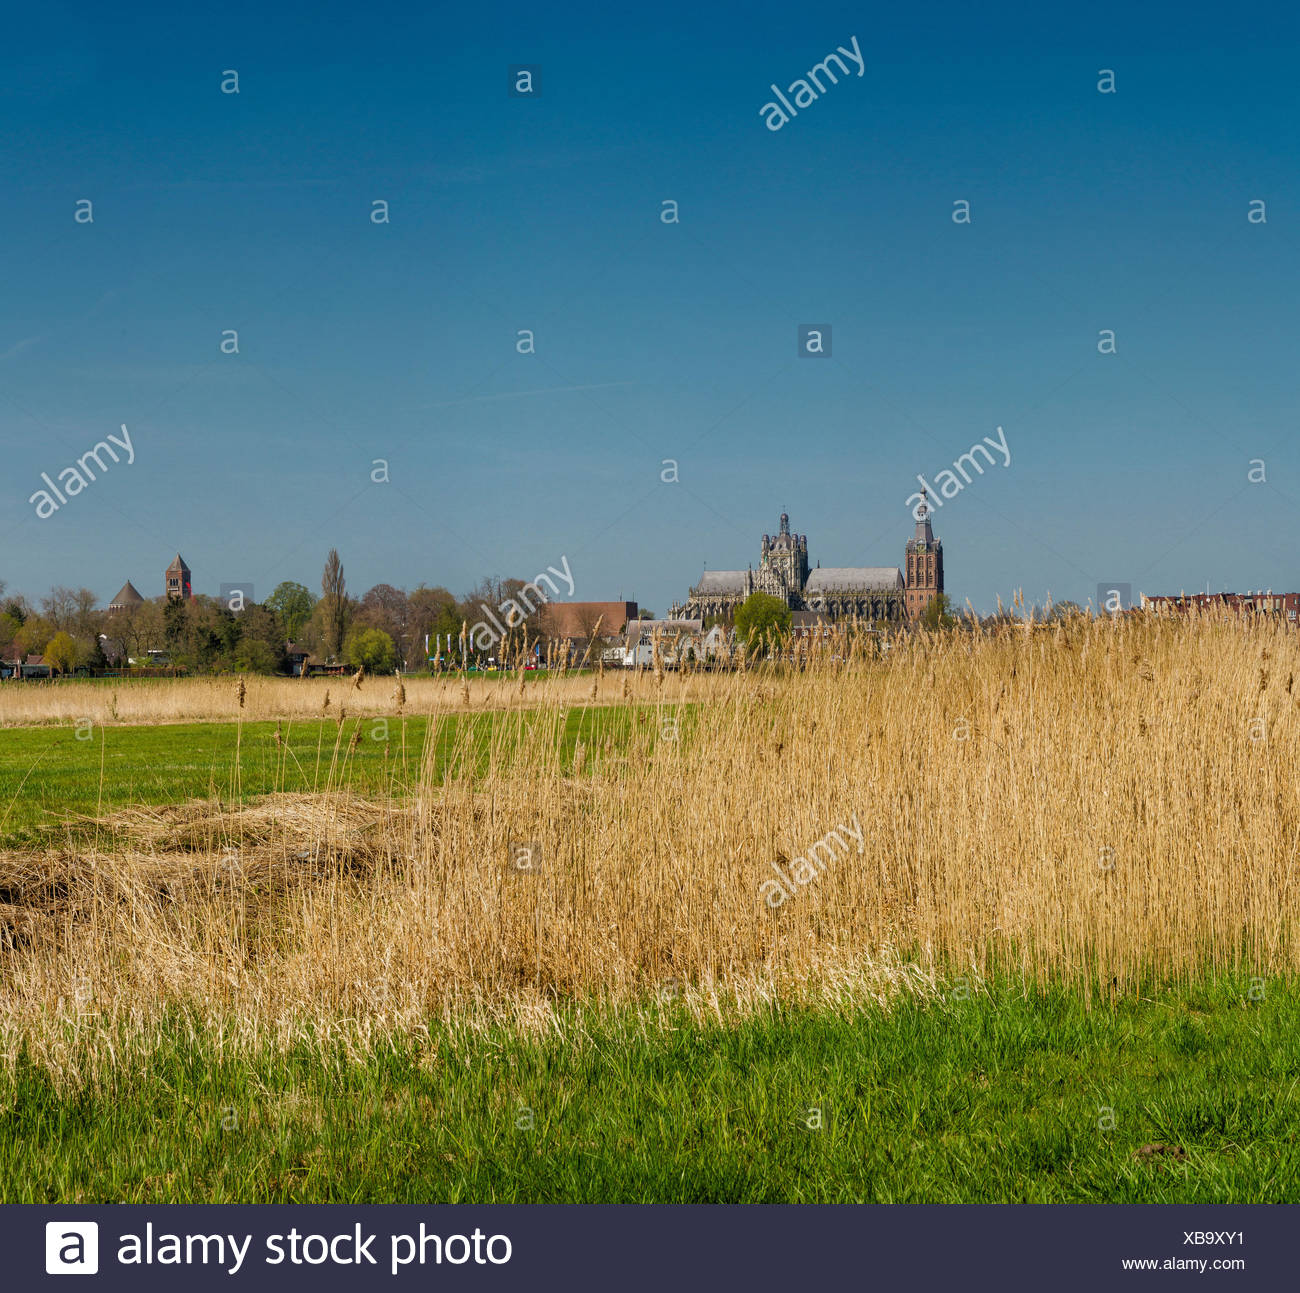 S-Hertogenbosch, Den Bosch, Pays-Bas, Hollande, Europe, paysage, champ, pré, printemps, Cathédrale, l'Église, Saint John Photo Stock